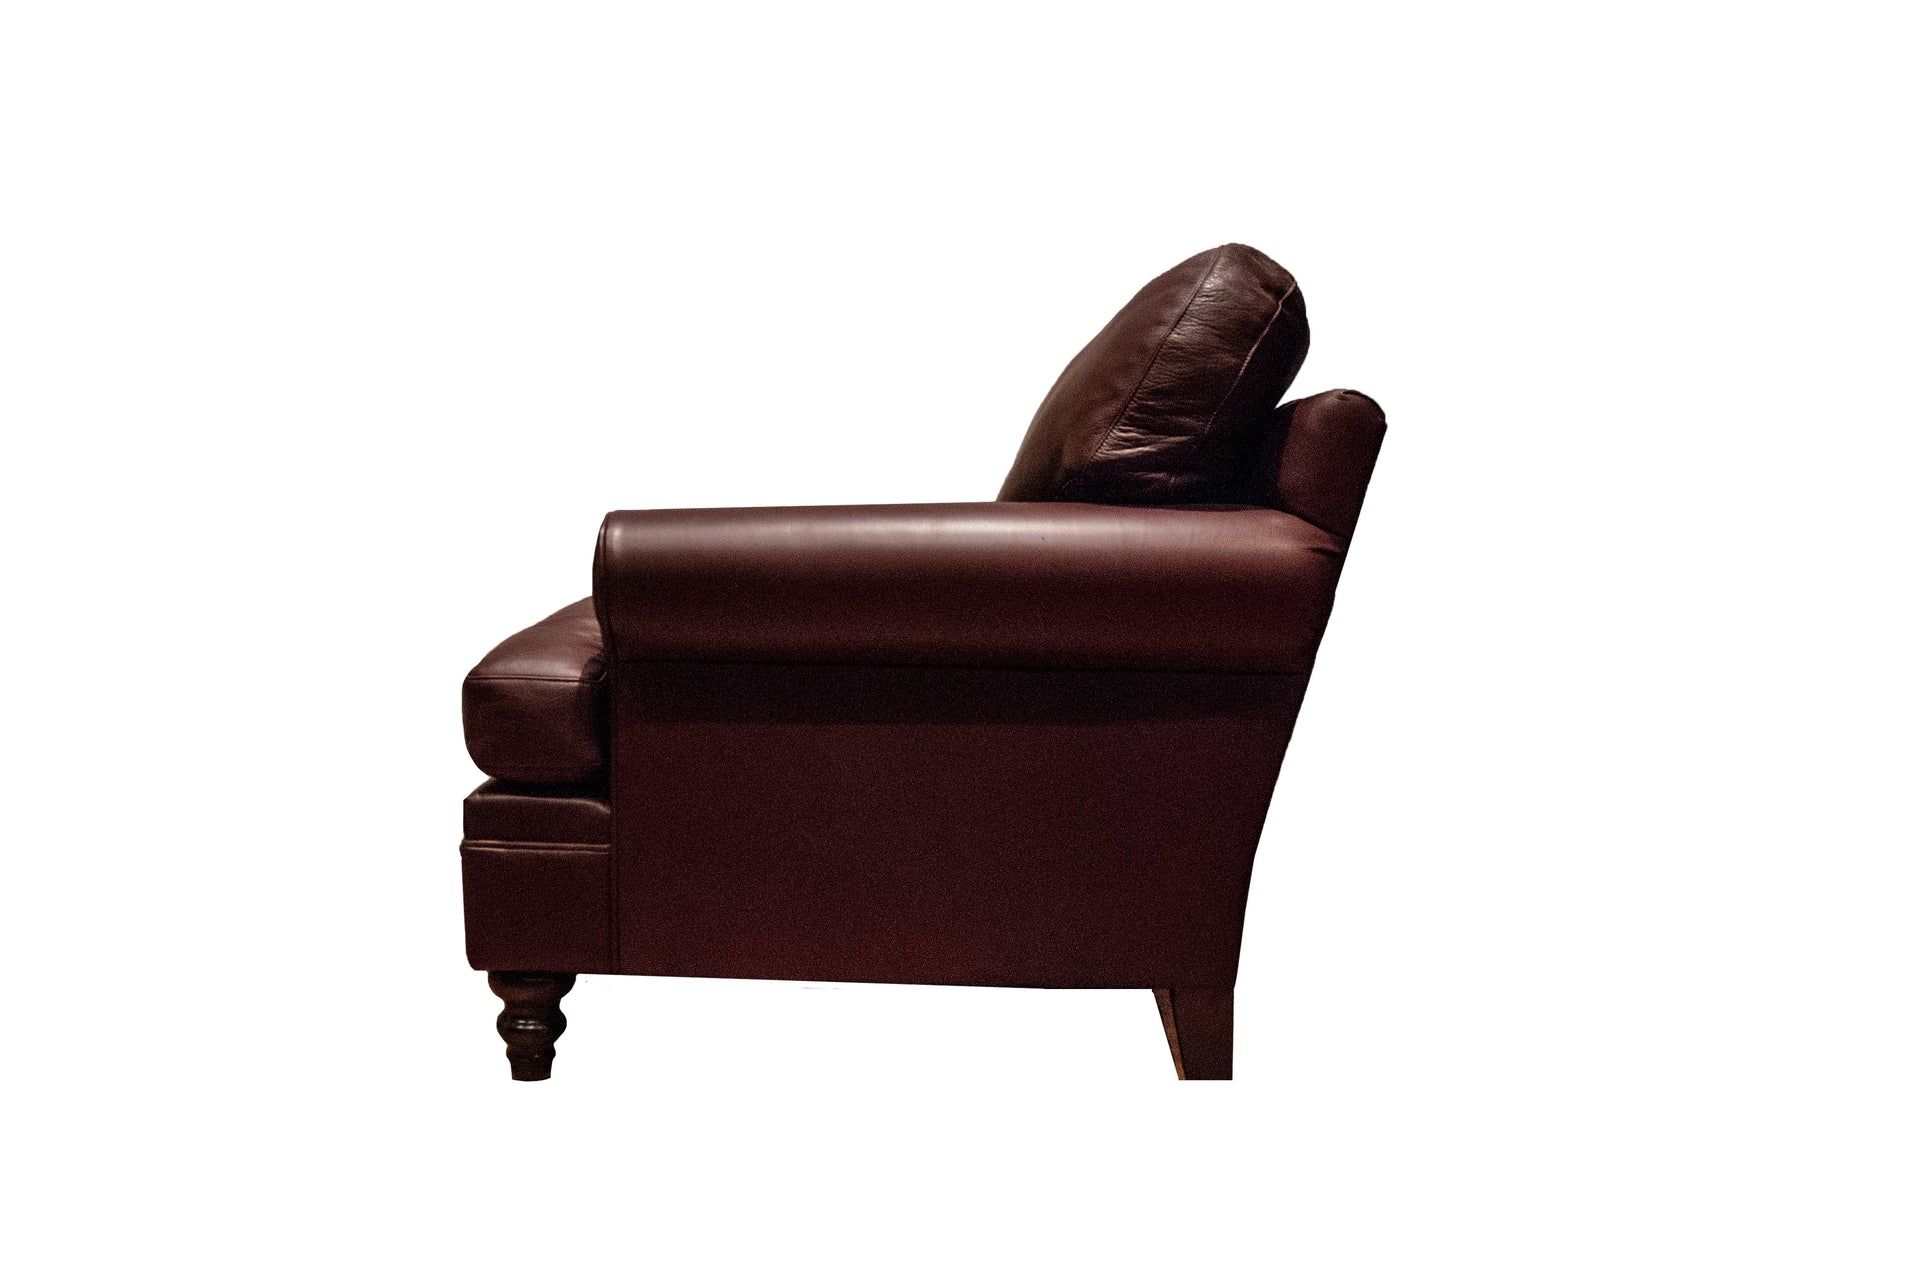 The Andalusian: Leather Chair